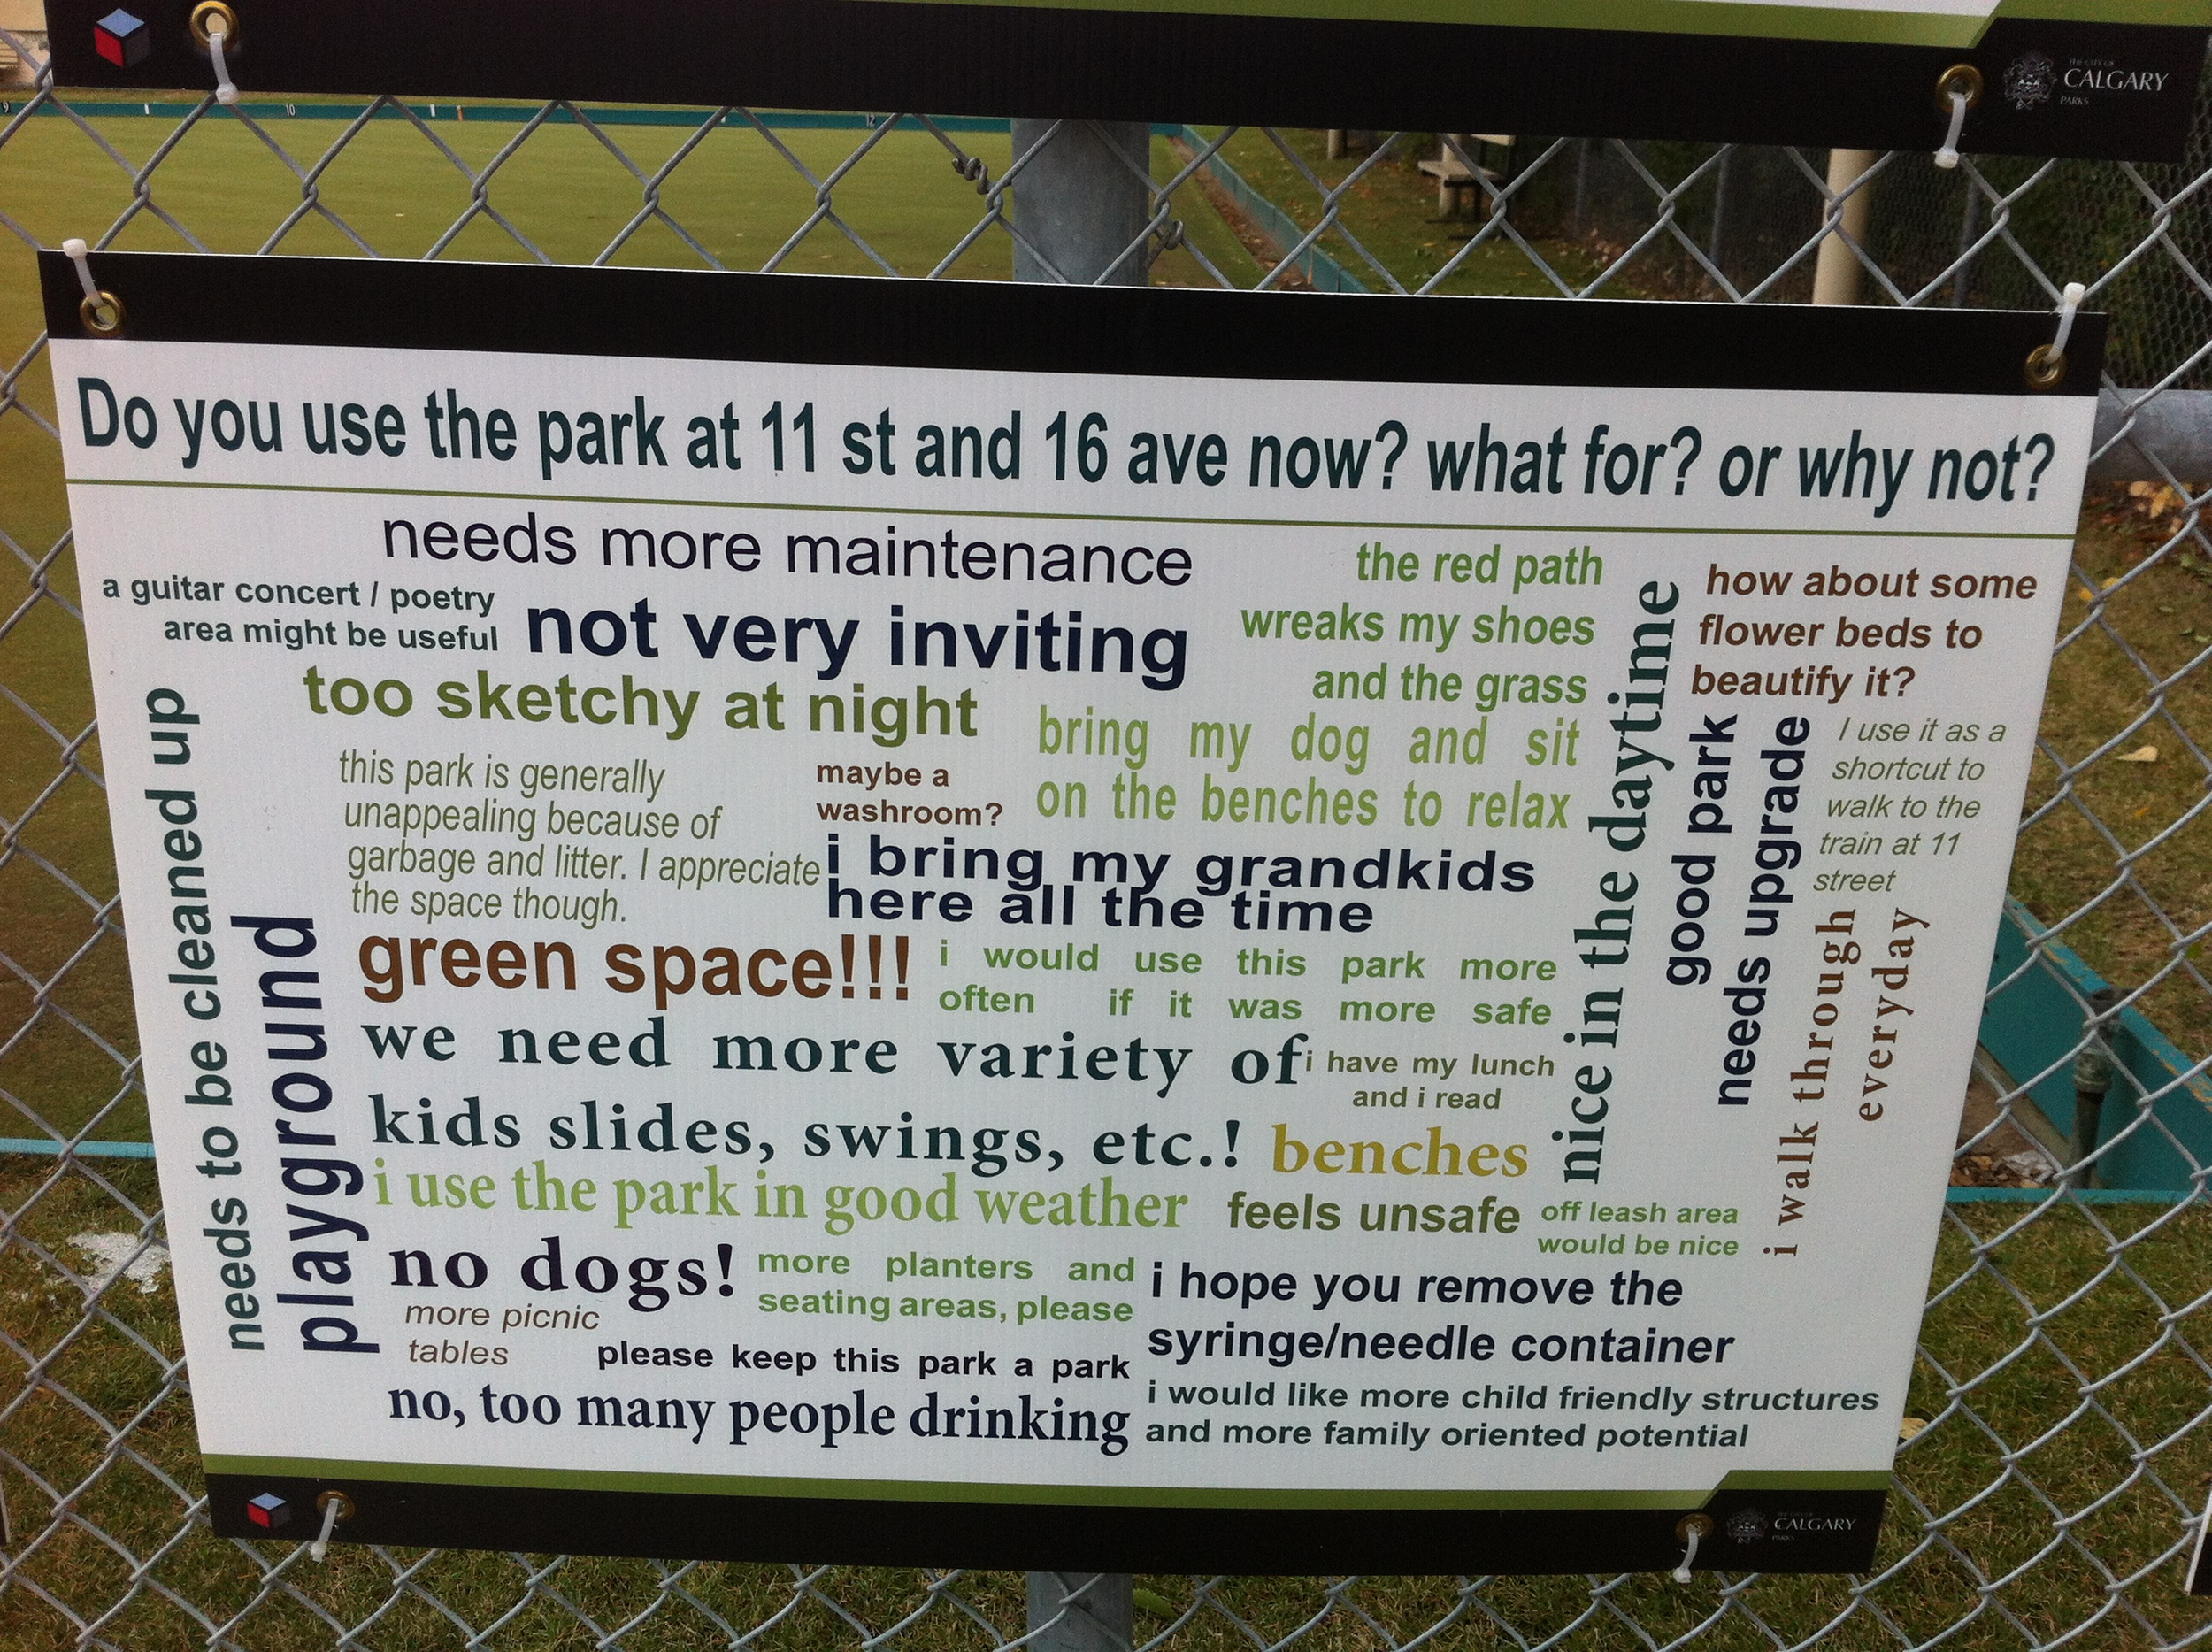 Information panel informing residents of plans for new park space with a mix of uses.